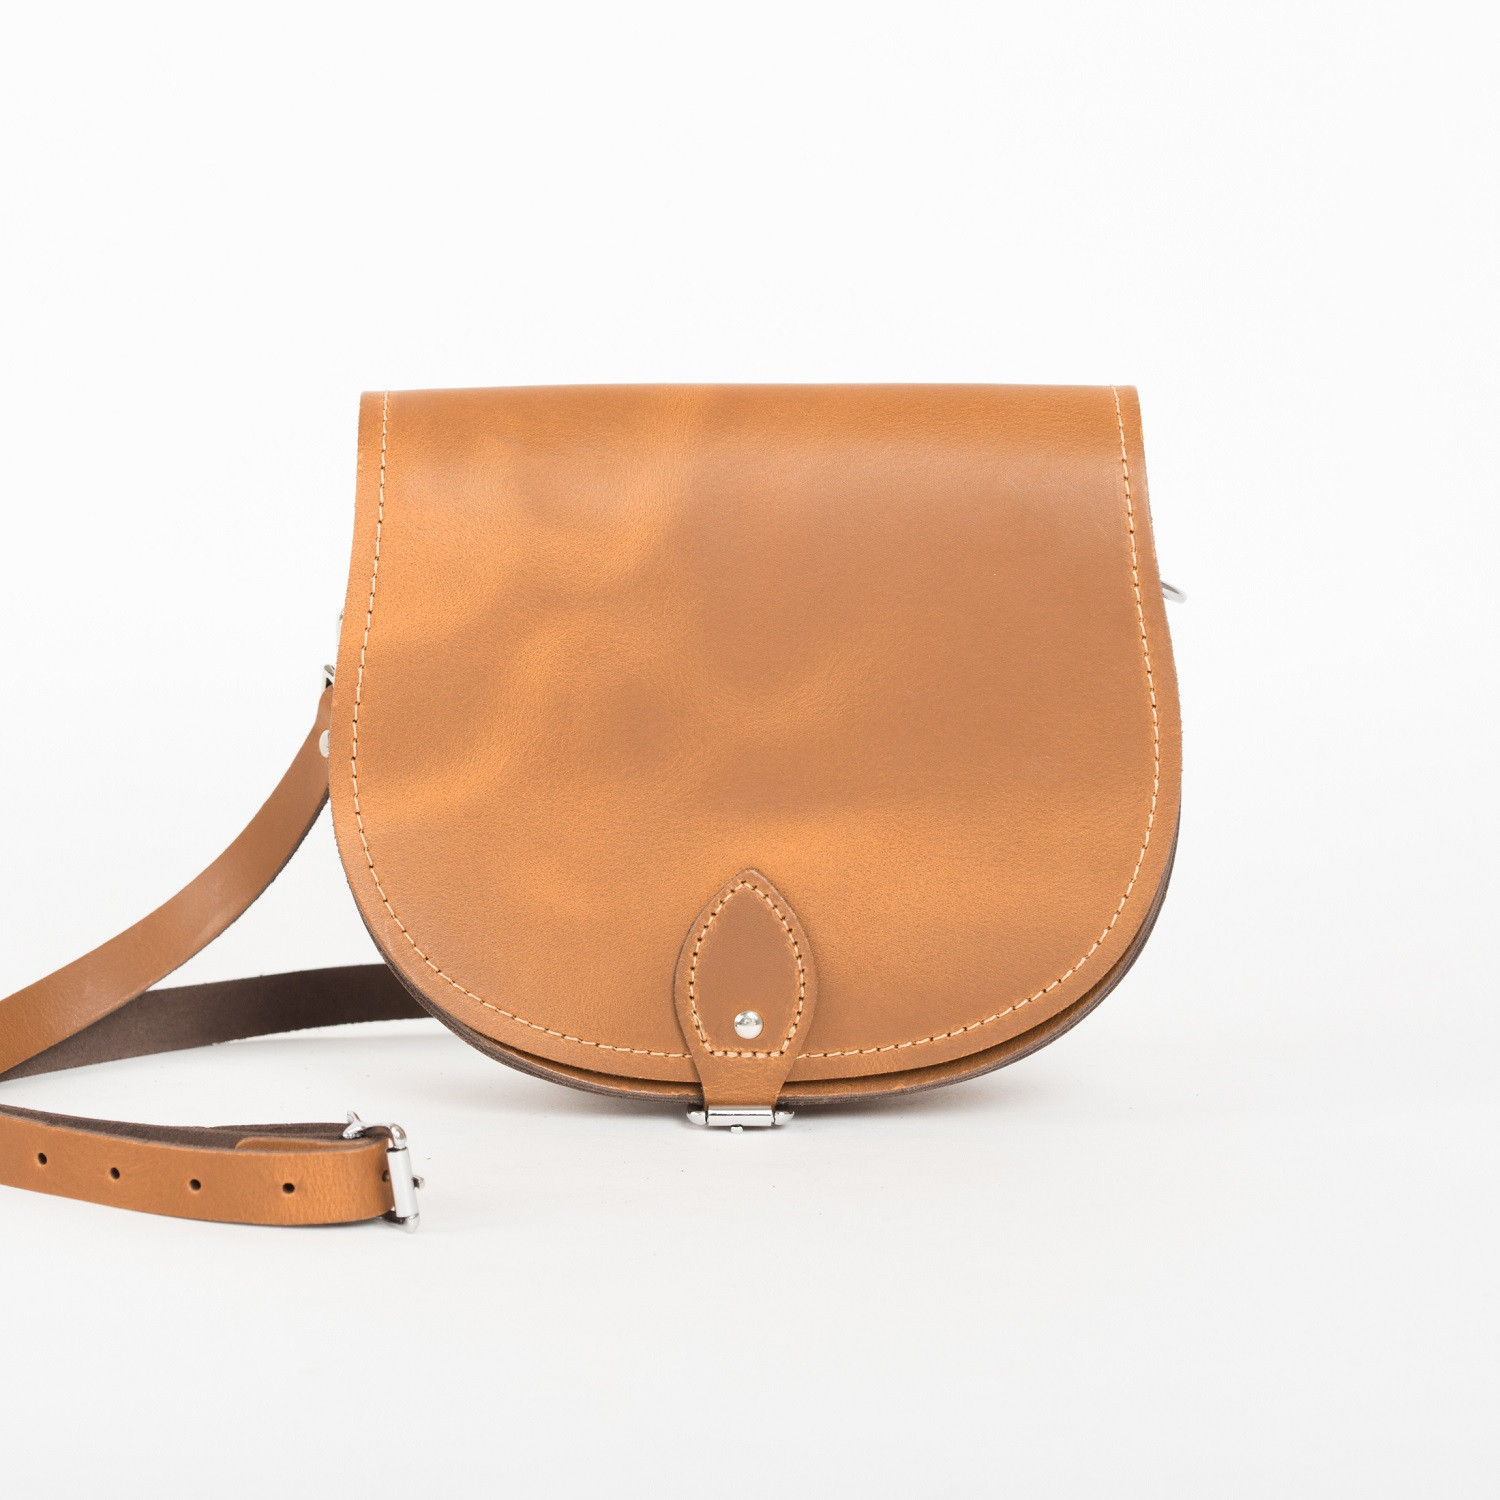 Avery Premium Leather Saddle Bag in Vintage Tan